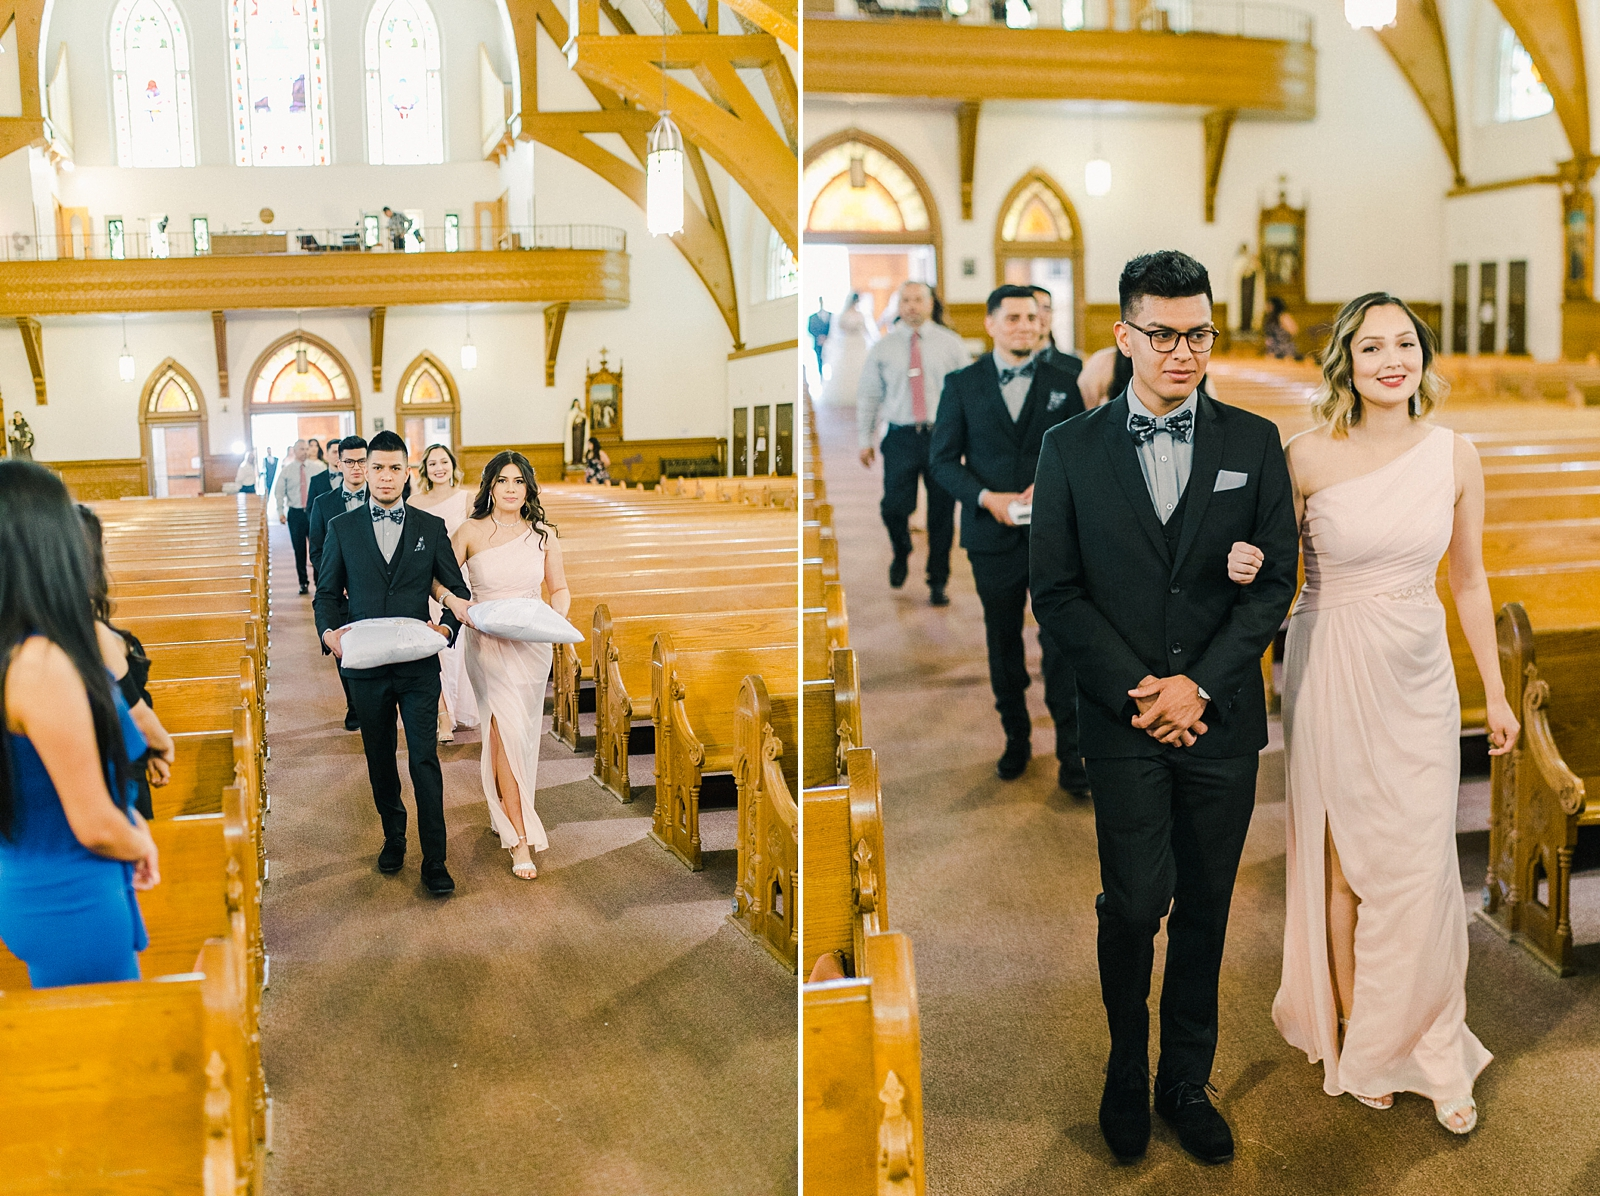 Cache Valley Logan Traditional Catholic Wedding Ceremony in a cathedral, Utah wedding photography